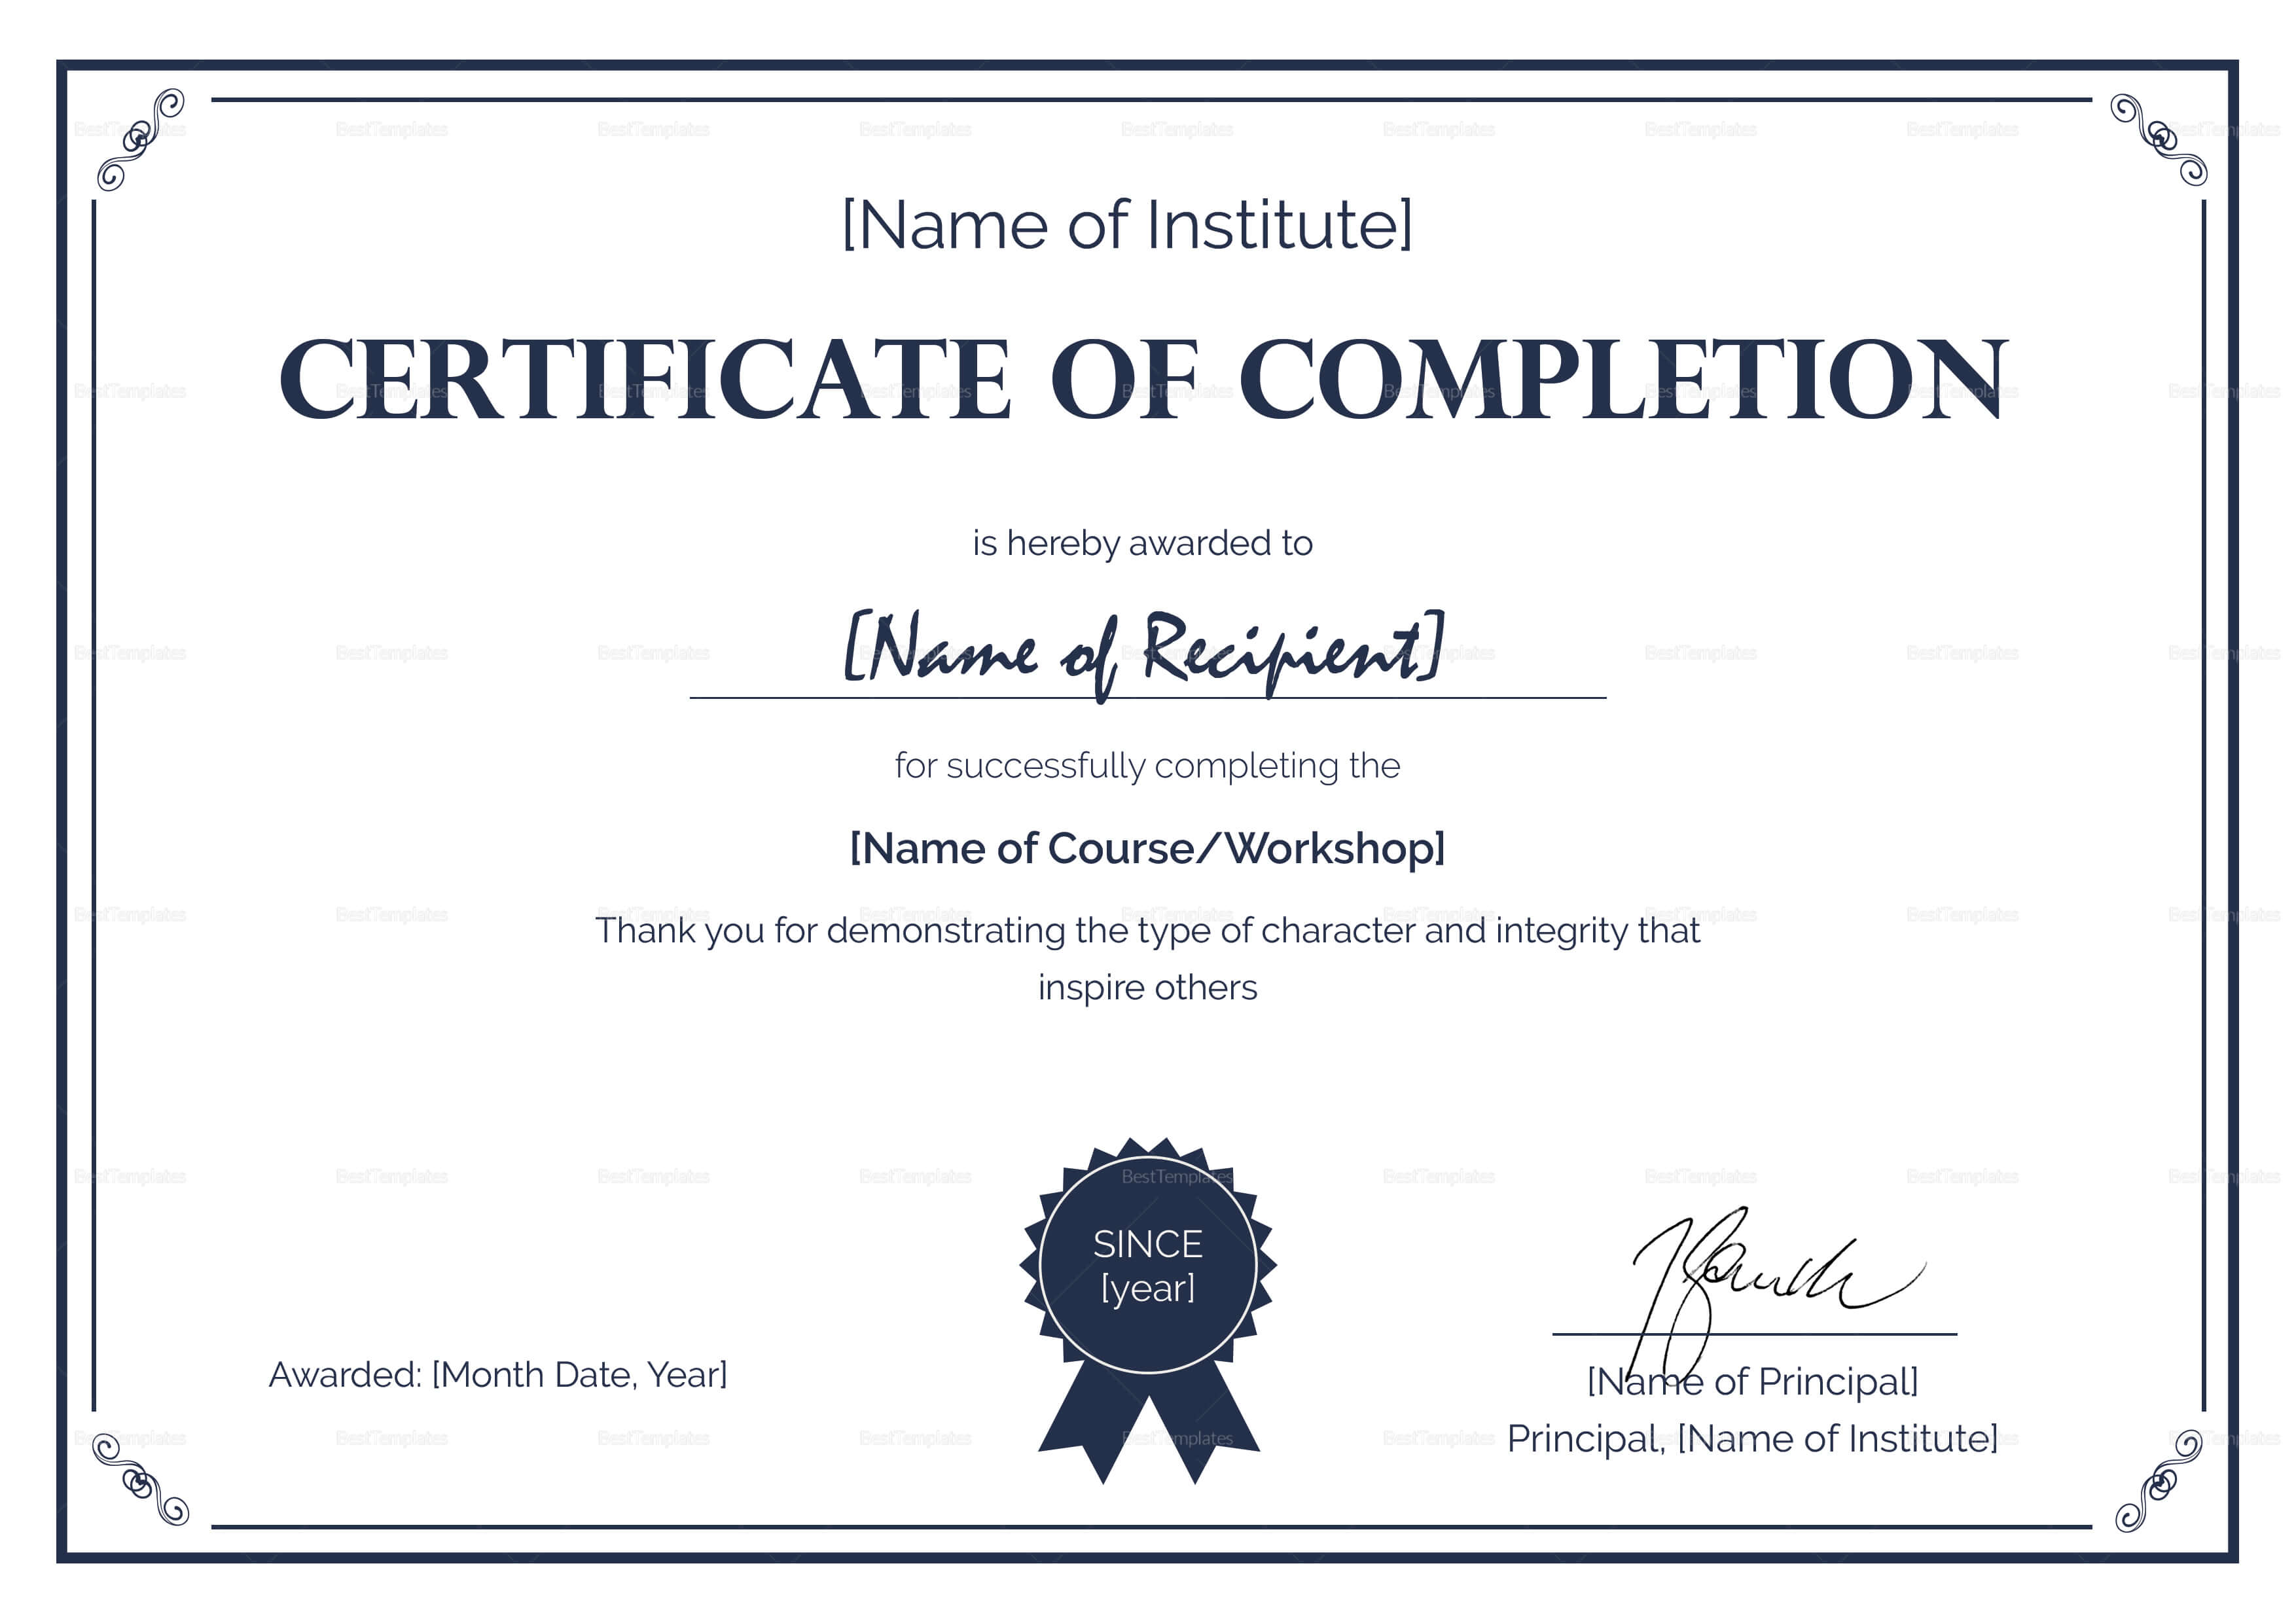 Formal Completion Certificate Template Intended For Certification Of Completion Template